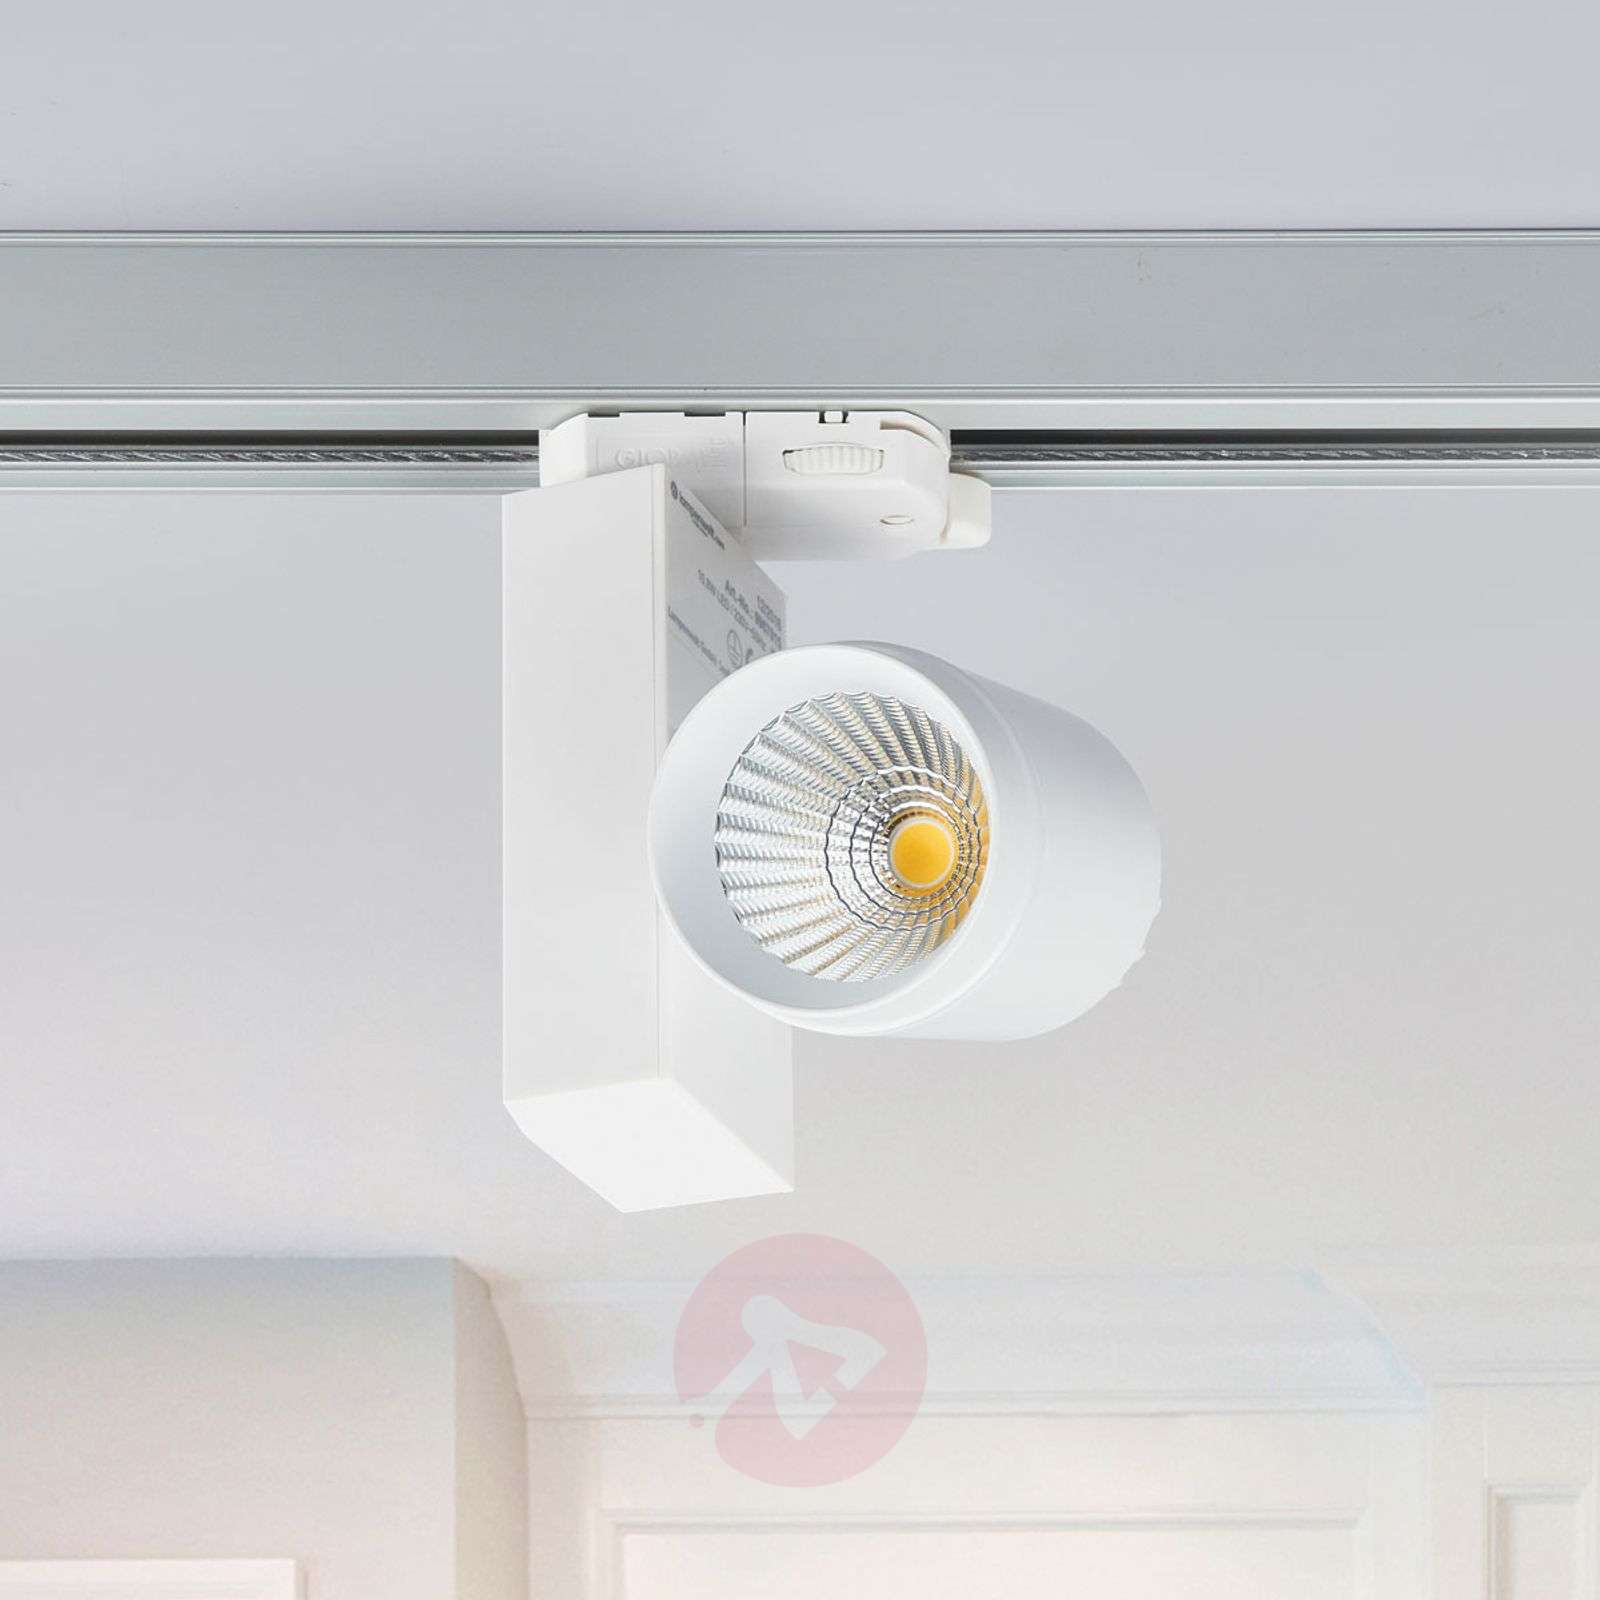 LED spotlight Niels, 3-circuit track system-9967015-02